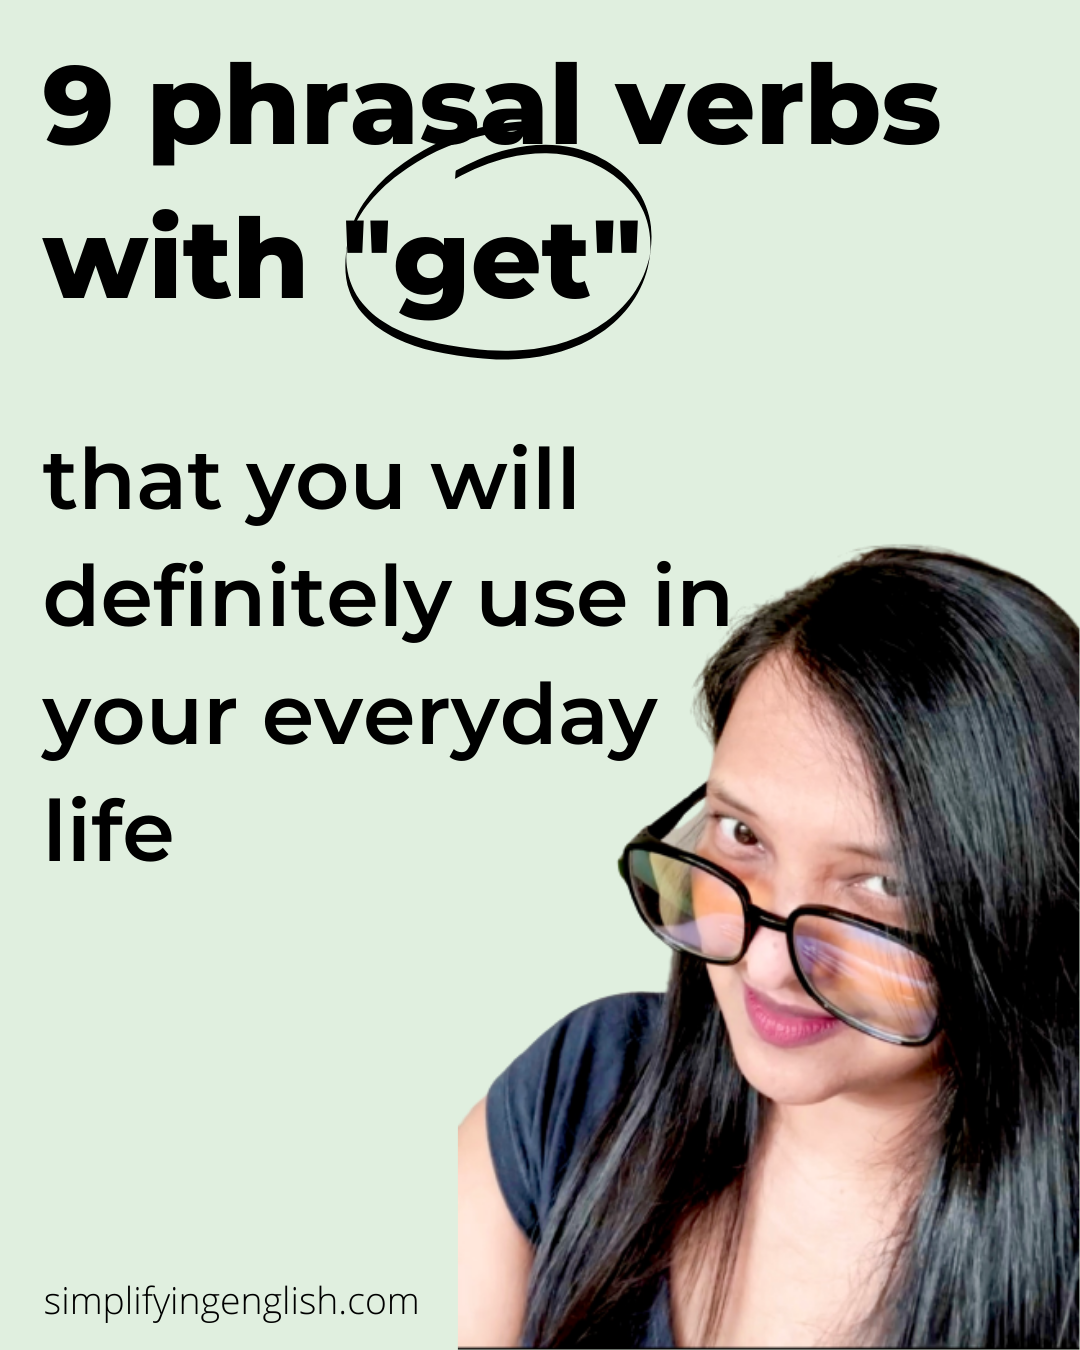 """9 Phrasal Verbs with """"GET"""" that you will definitely use in your everyday life"""